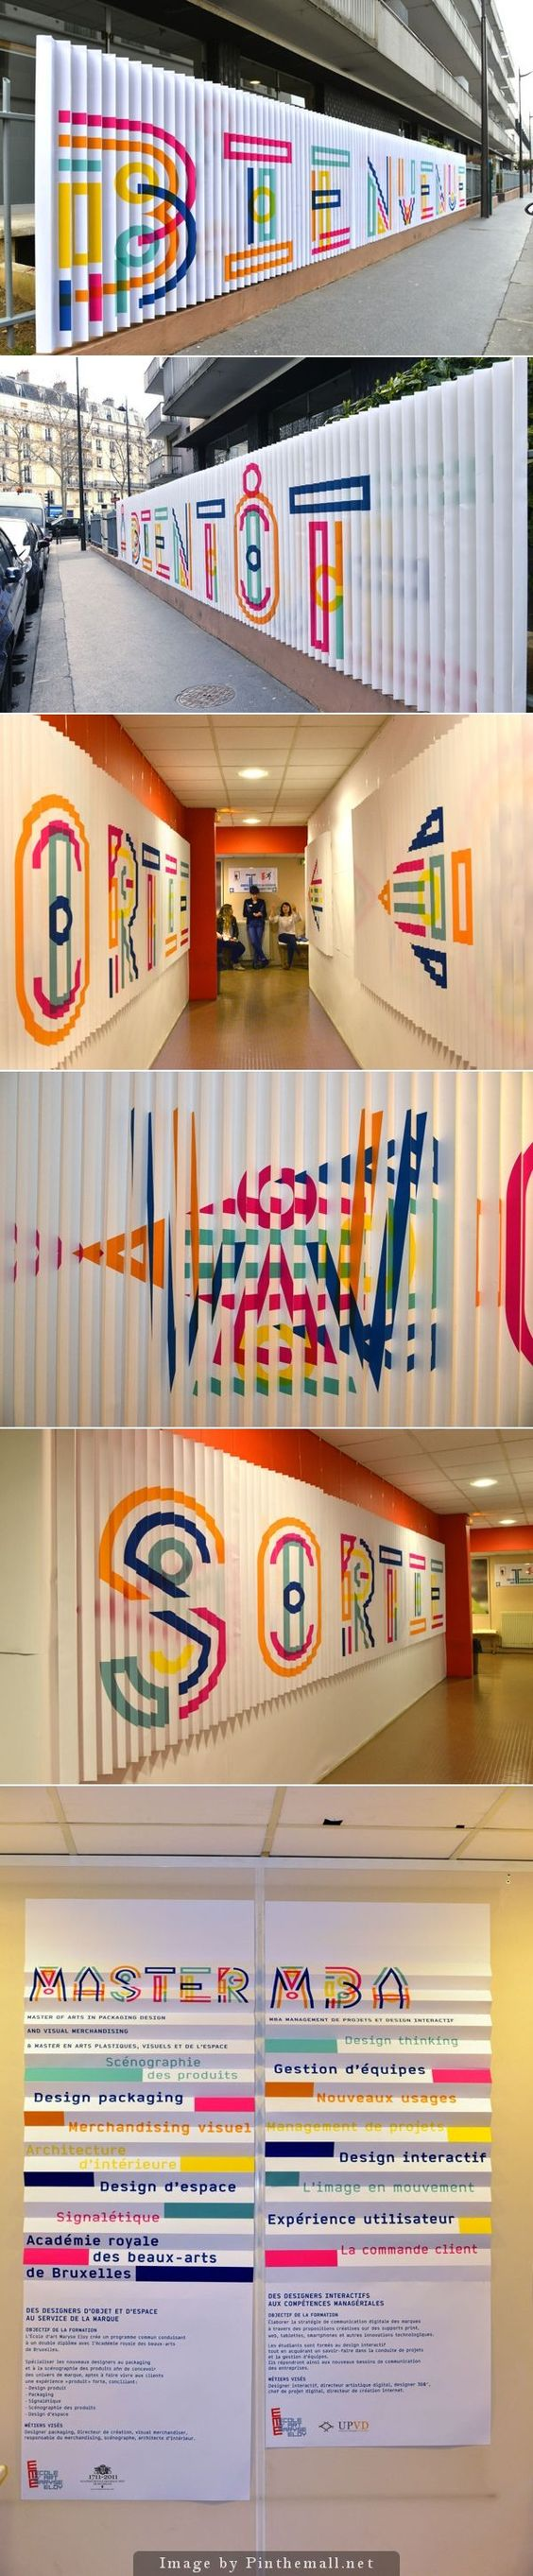 Color art tipografia - Gorgeous Colors And Typography